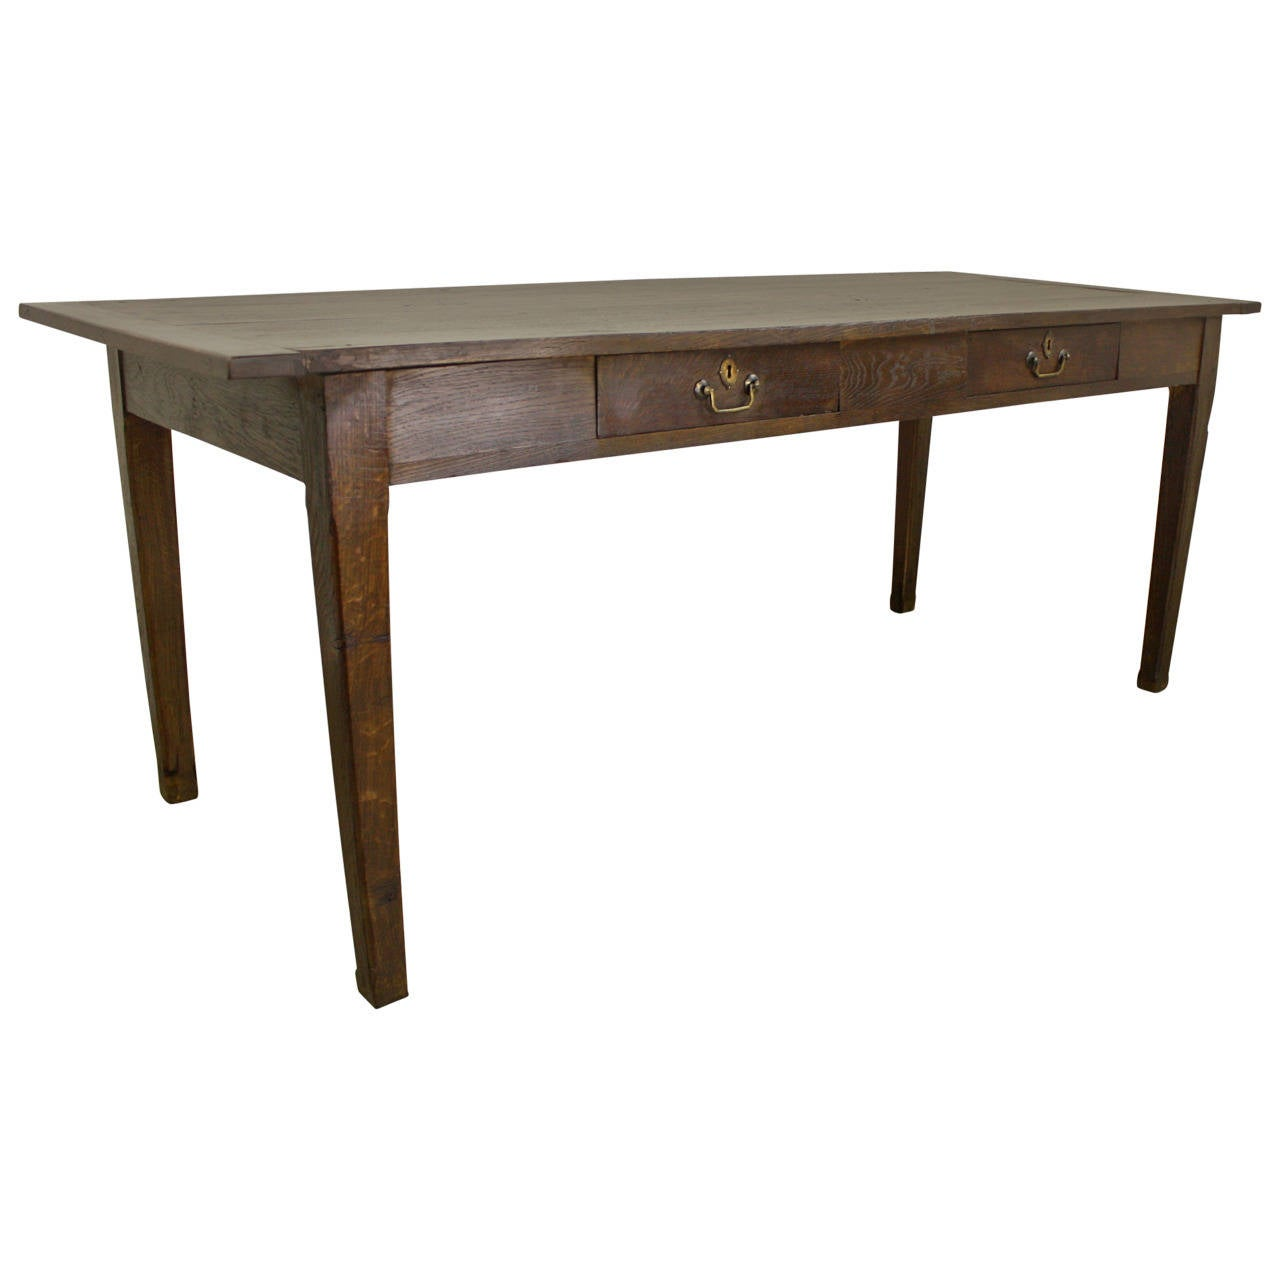 Farmhouse Kitchen Table With Drawers: Antique Two-Drawer Chestnut Farm Table At 1stdibs